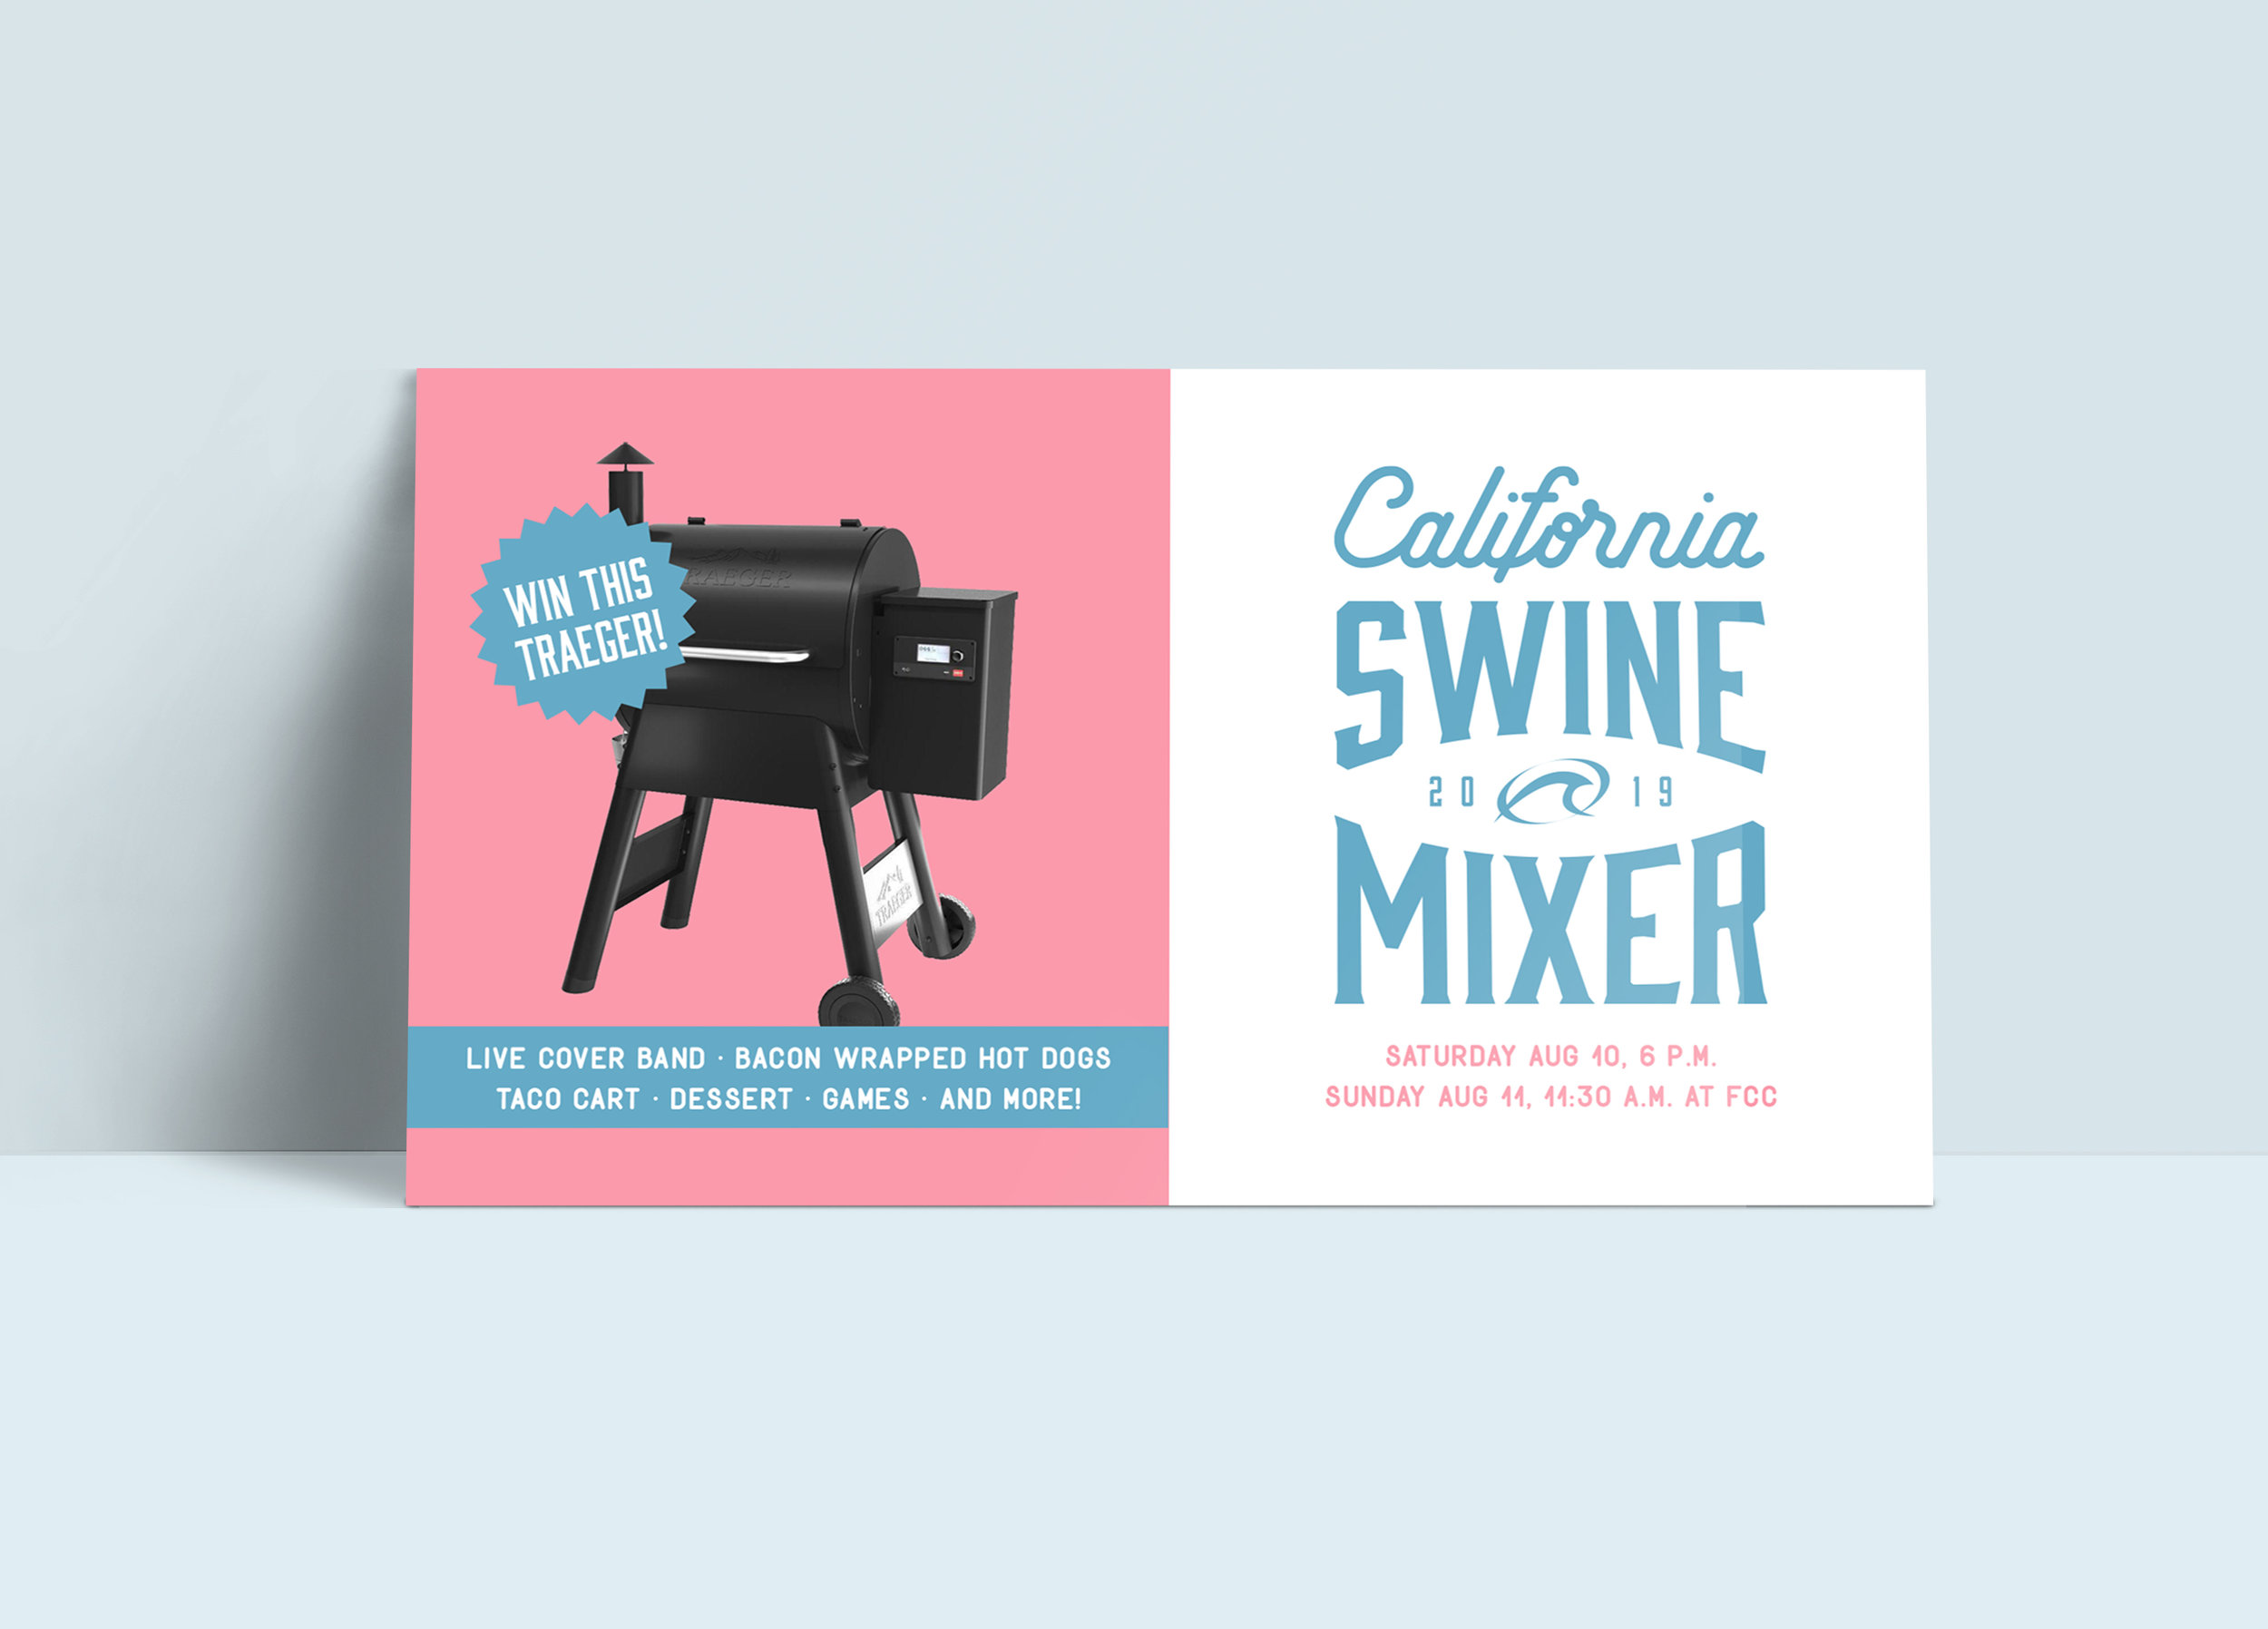 SWINE-MIXER-POSTCARD.jpg